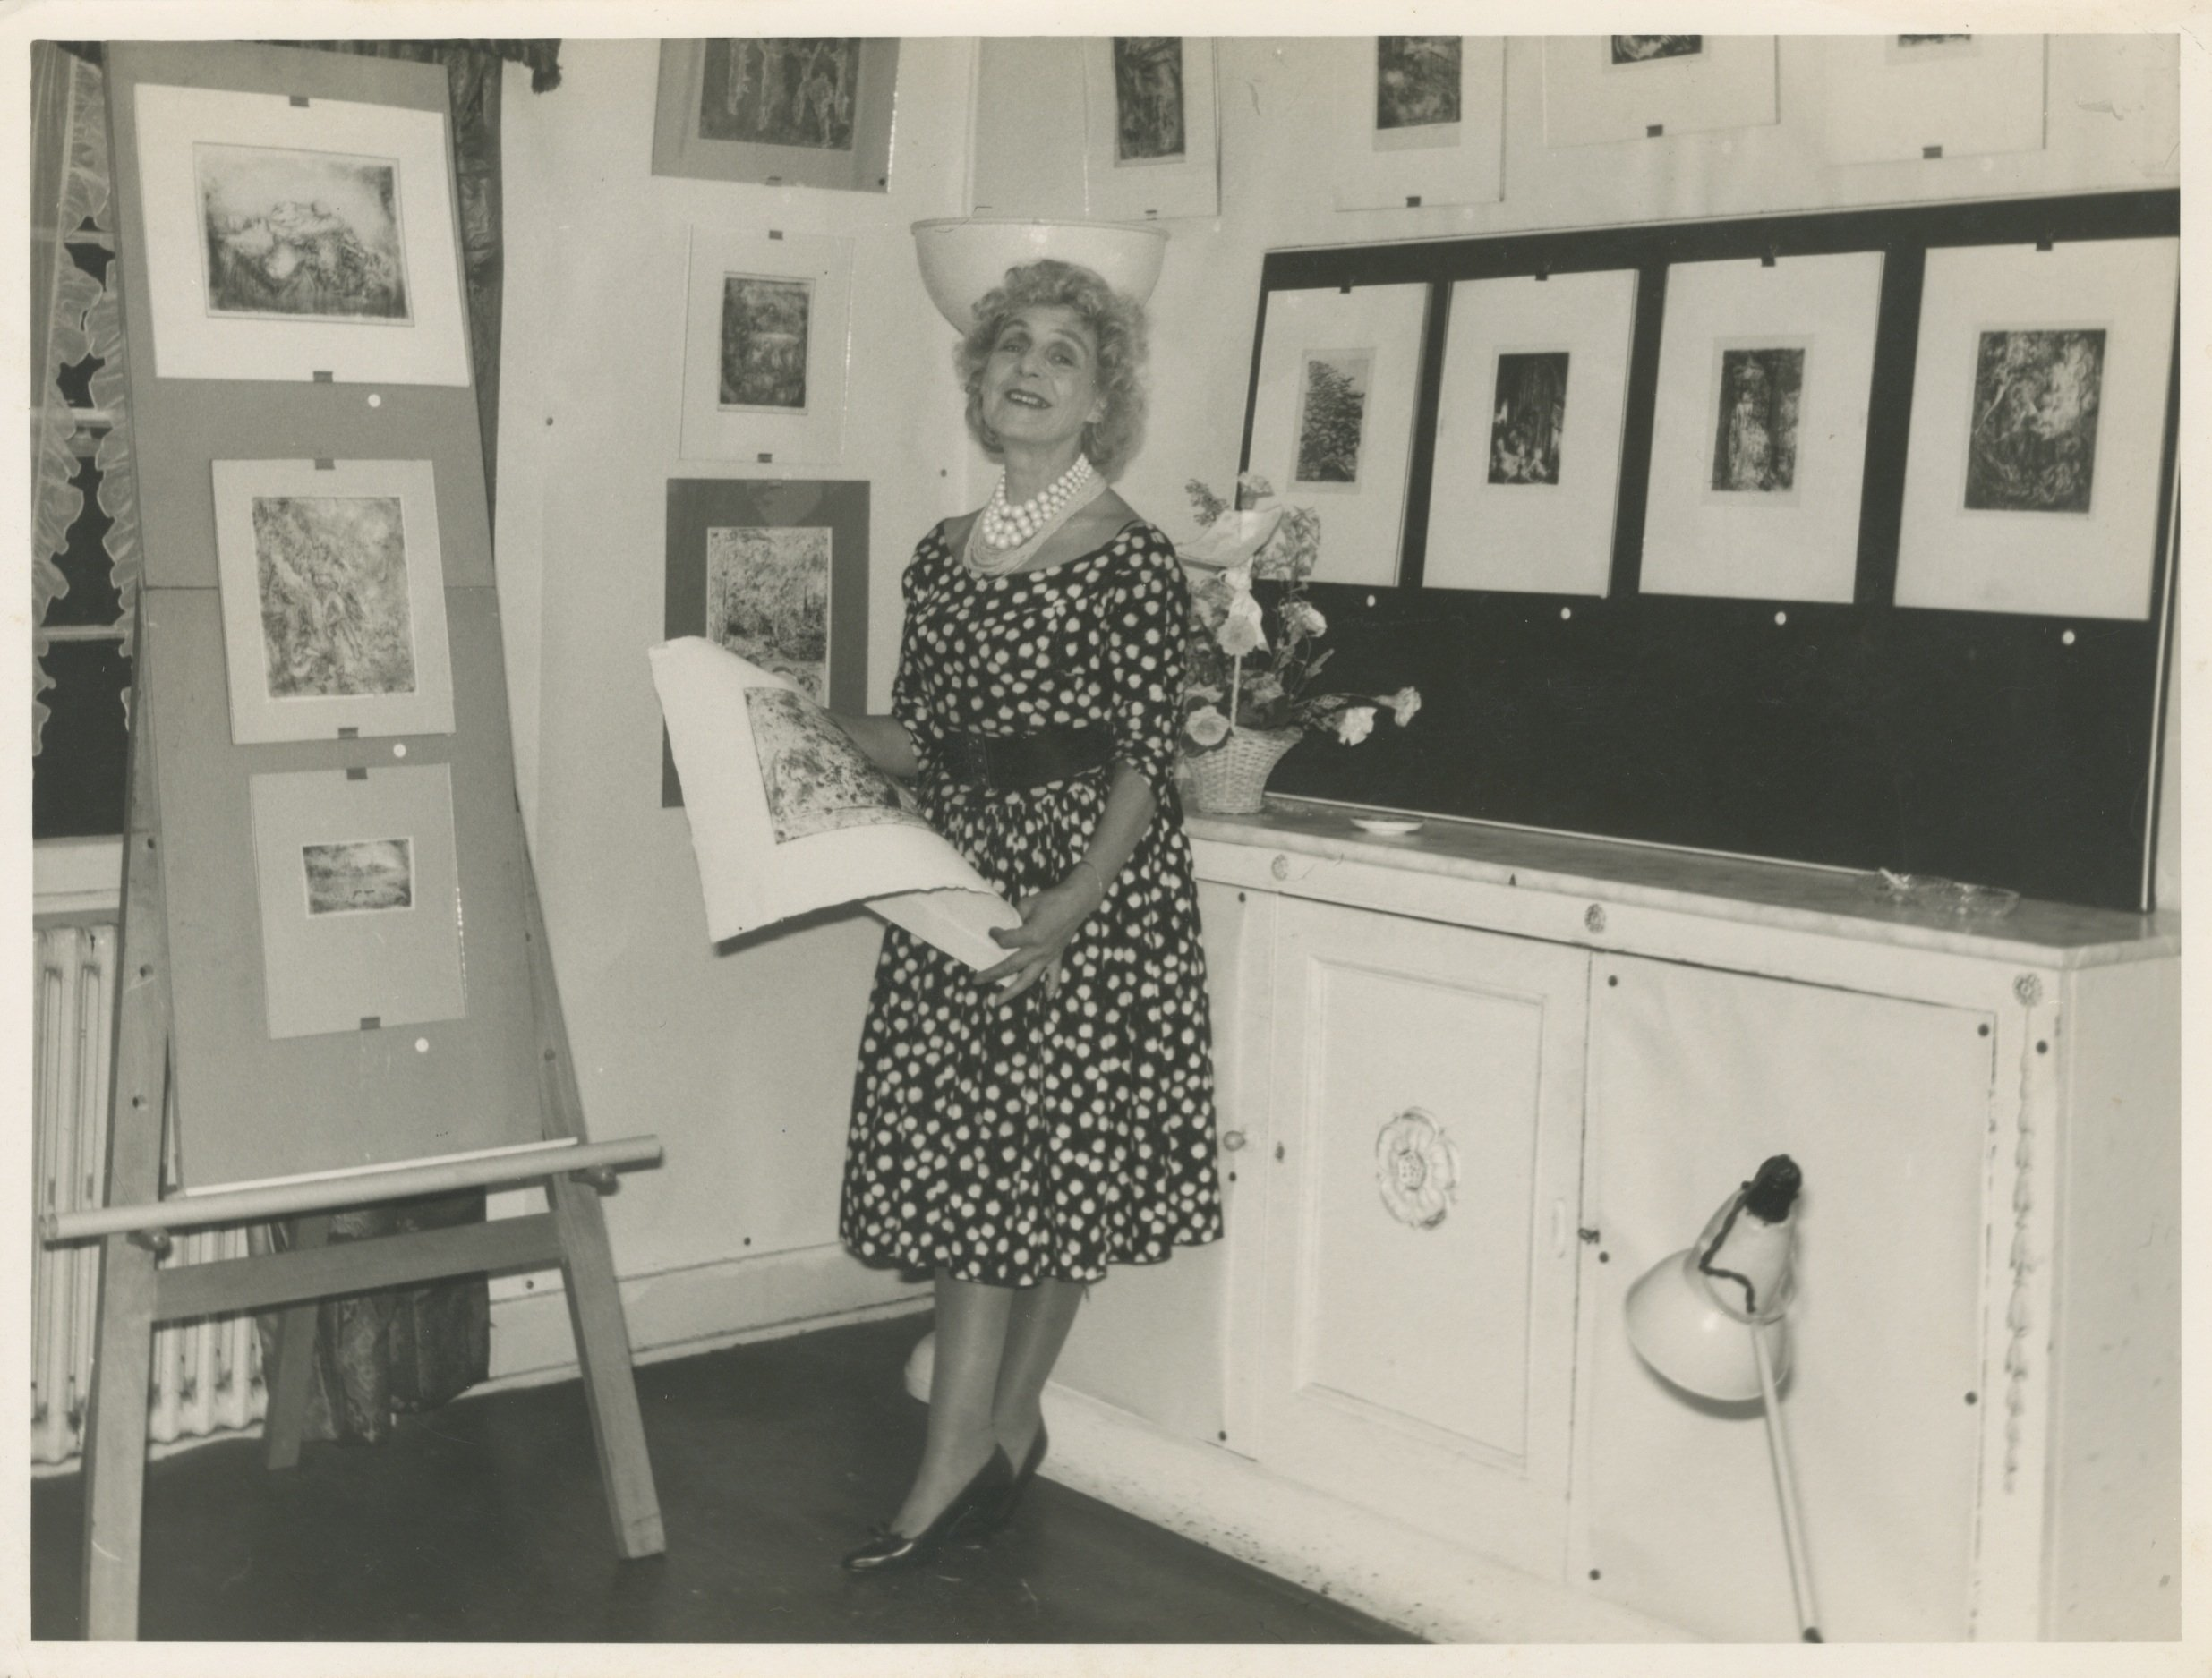 Aliye Berger poses with her artworks. (Courtesy of SALT Research)